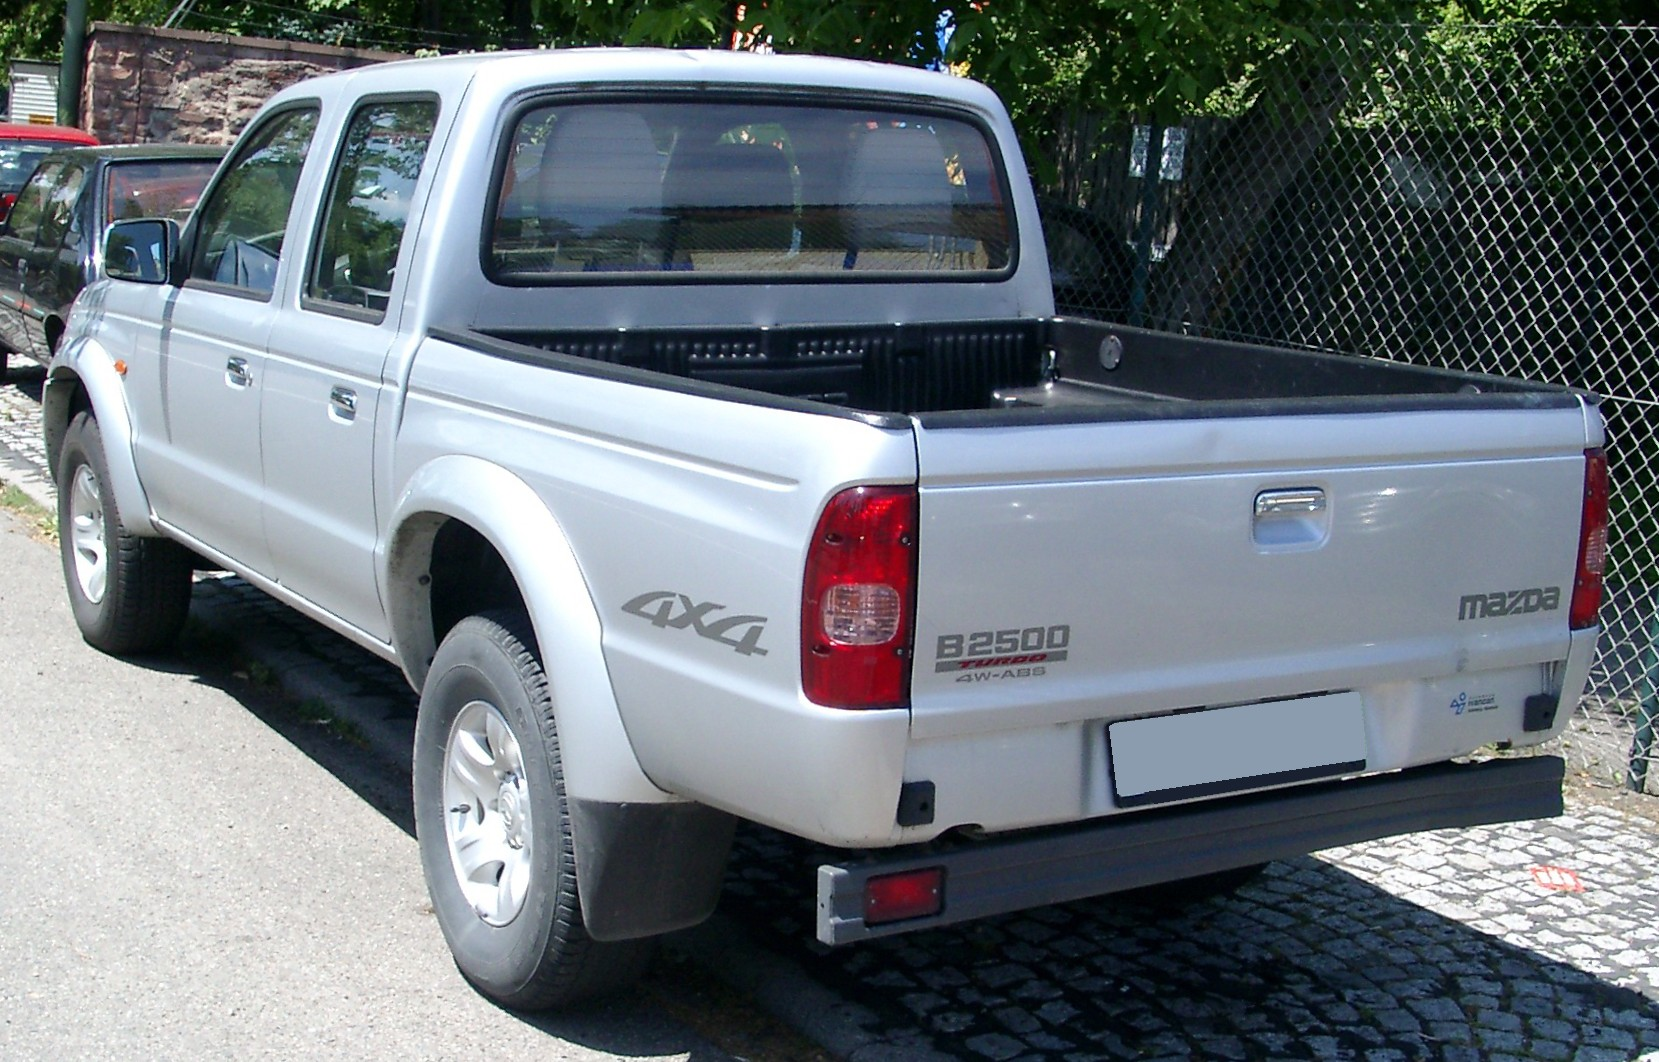 File:Mazda B2500 rear 20080612.jpg - Wikimedia Commons